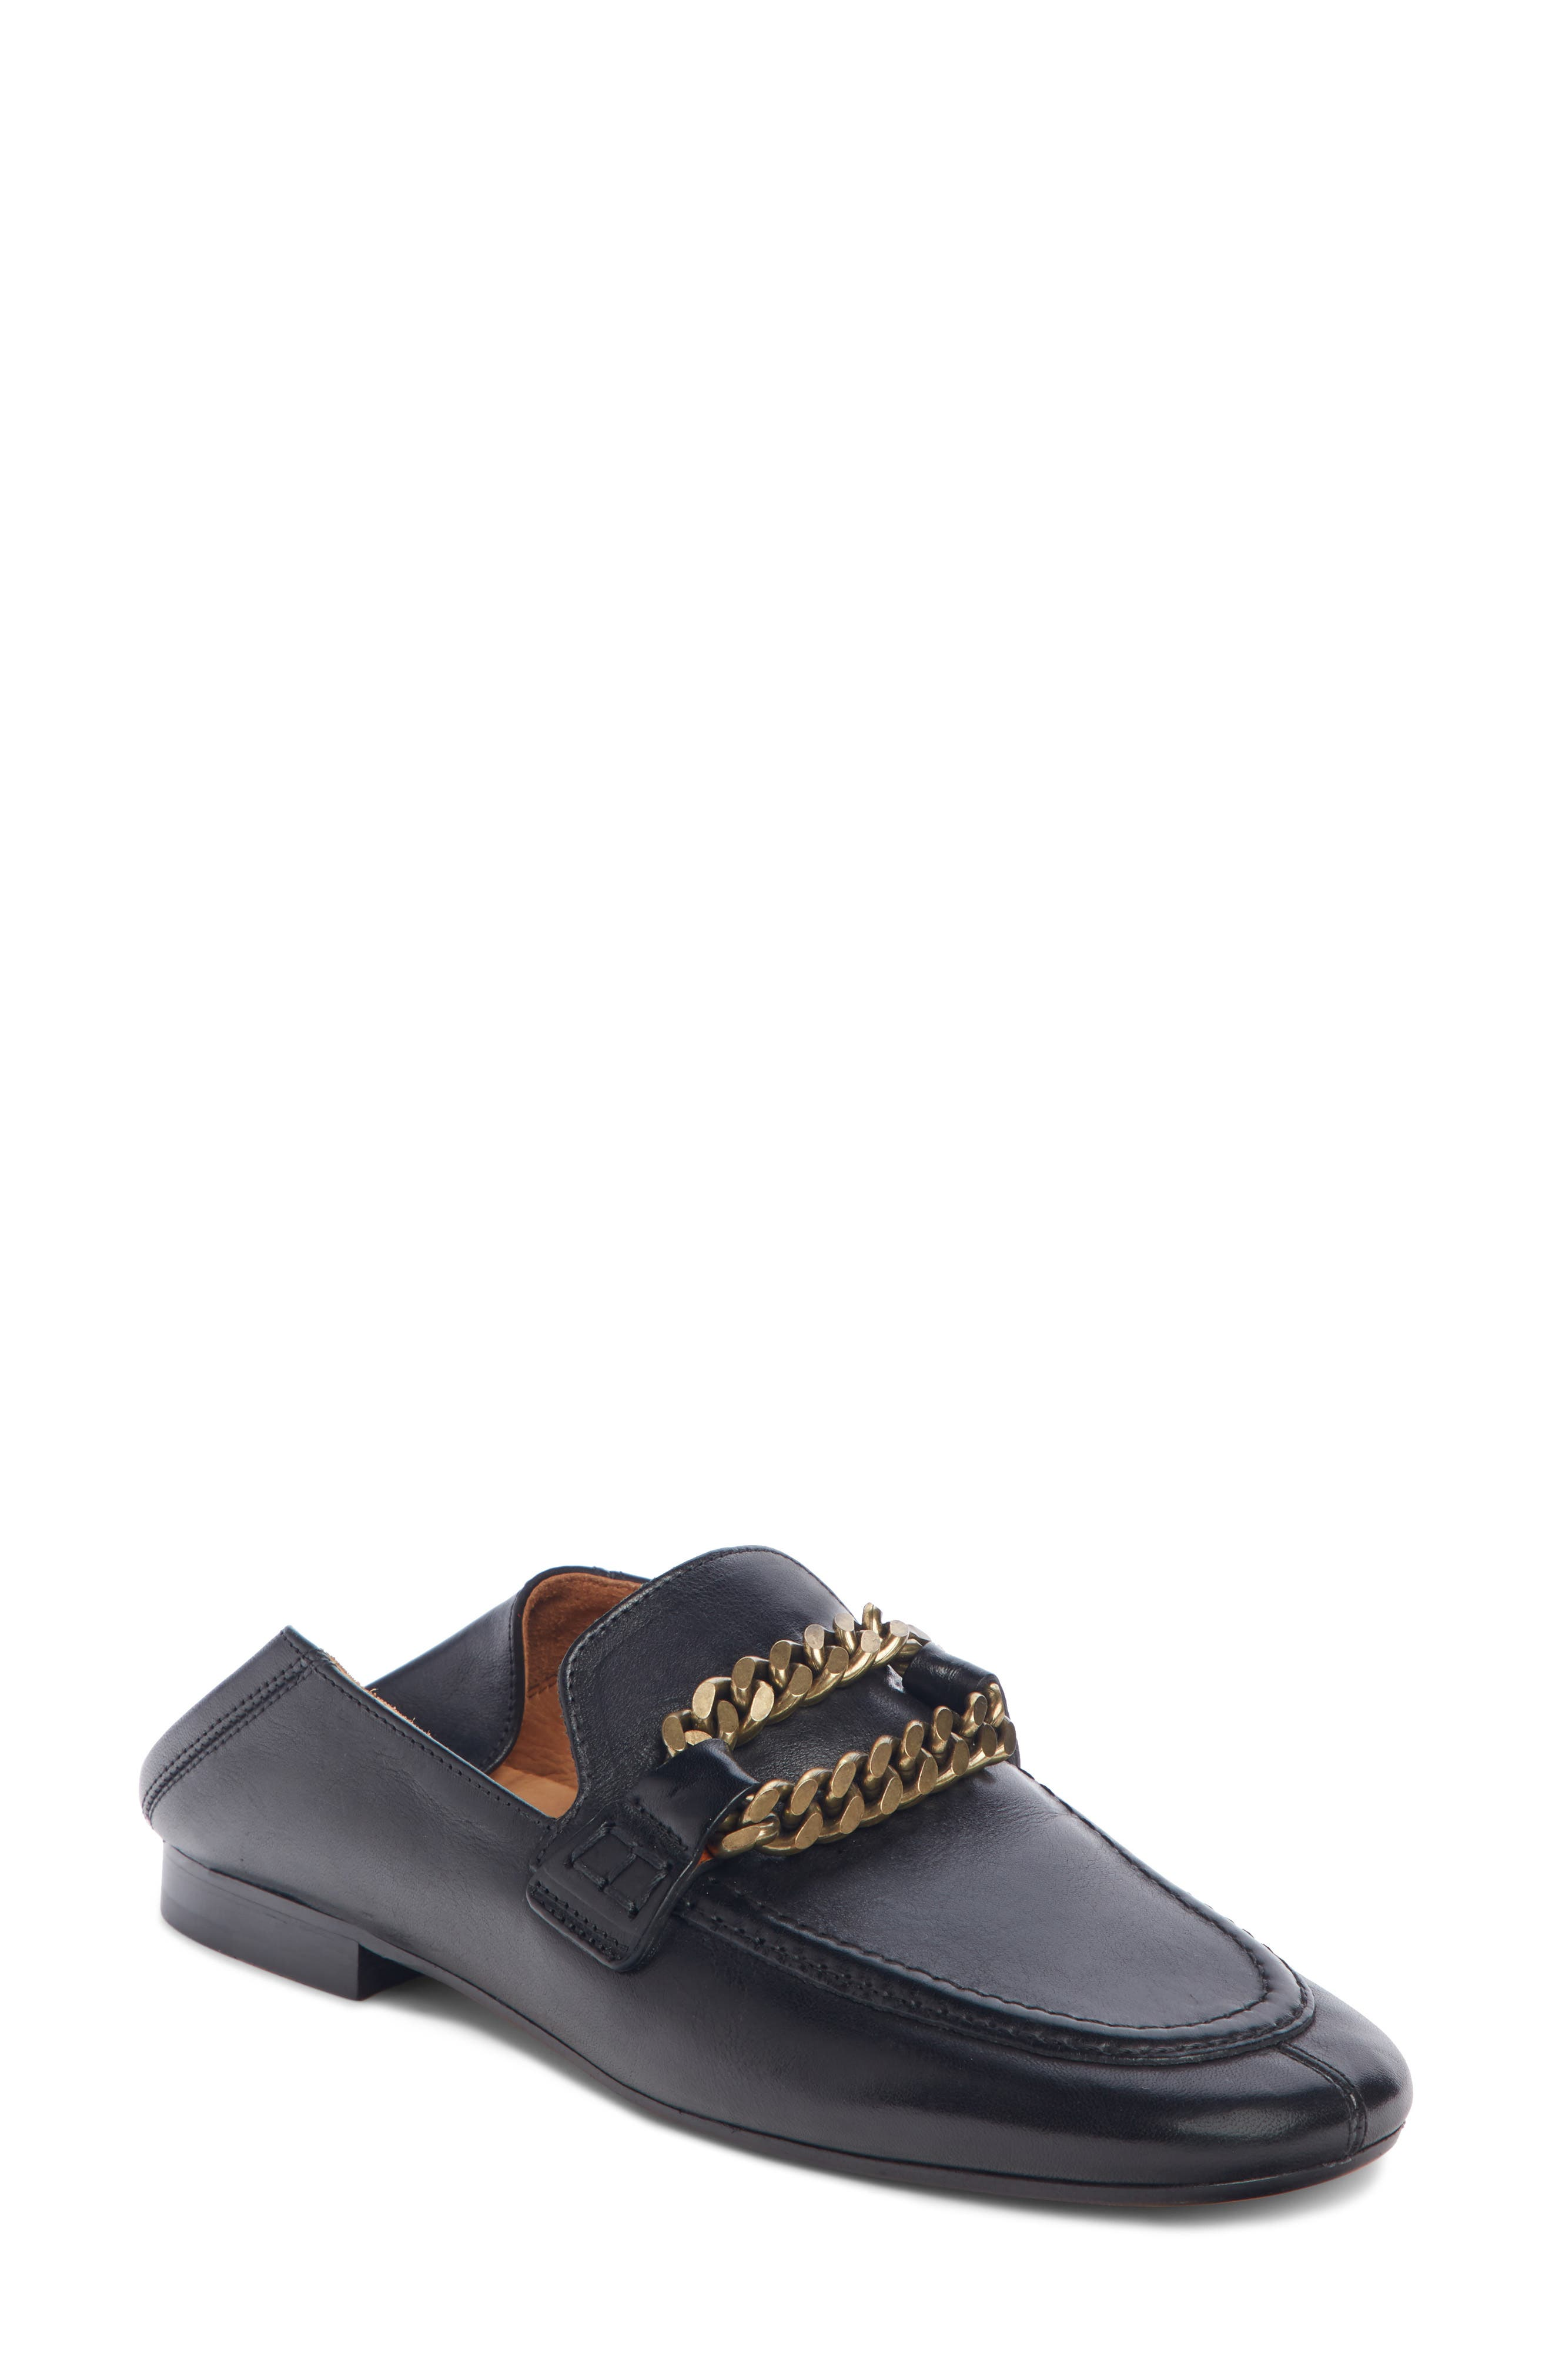 Isabel Marant Firlee Chain Convertible Loafer